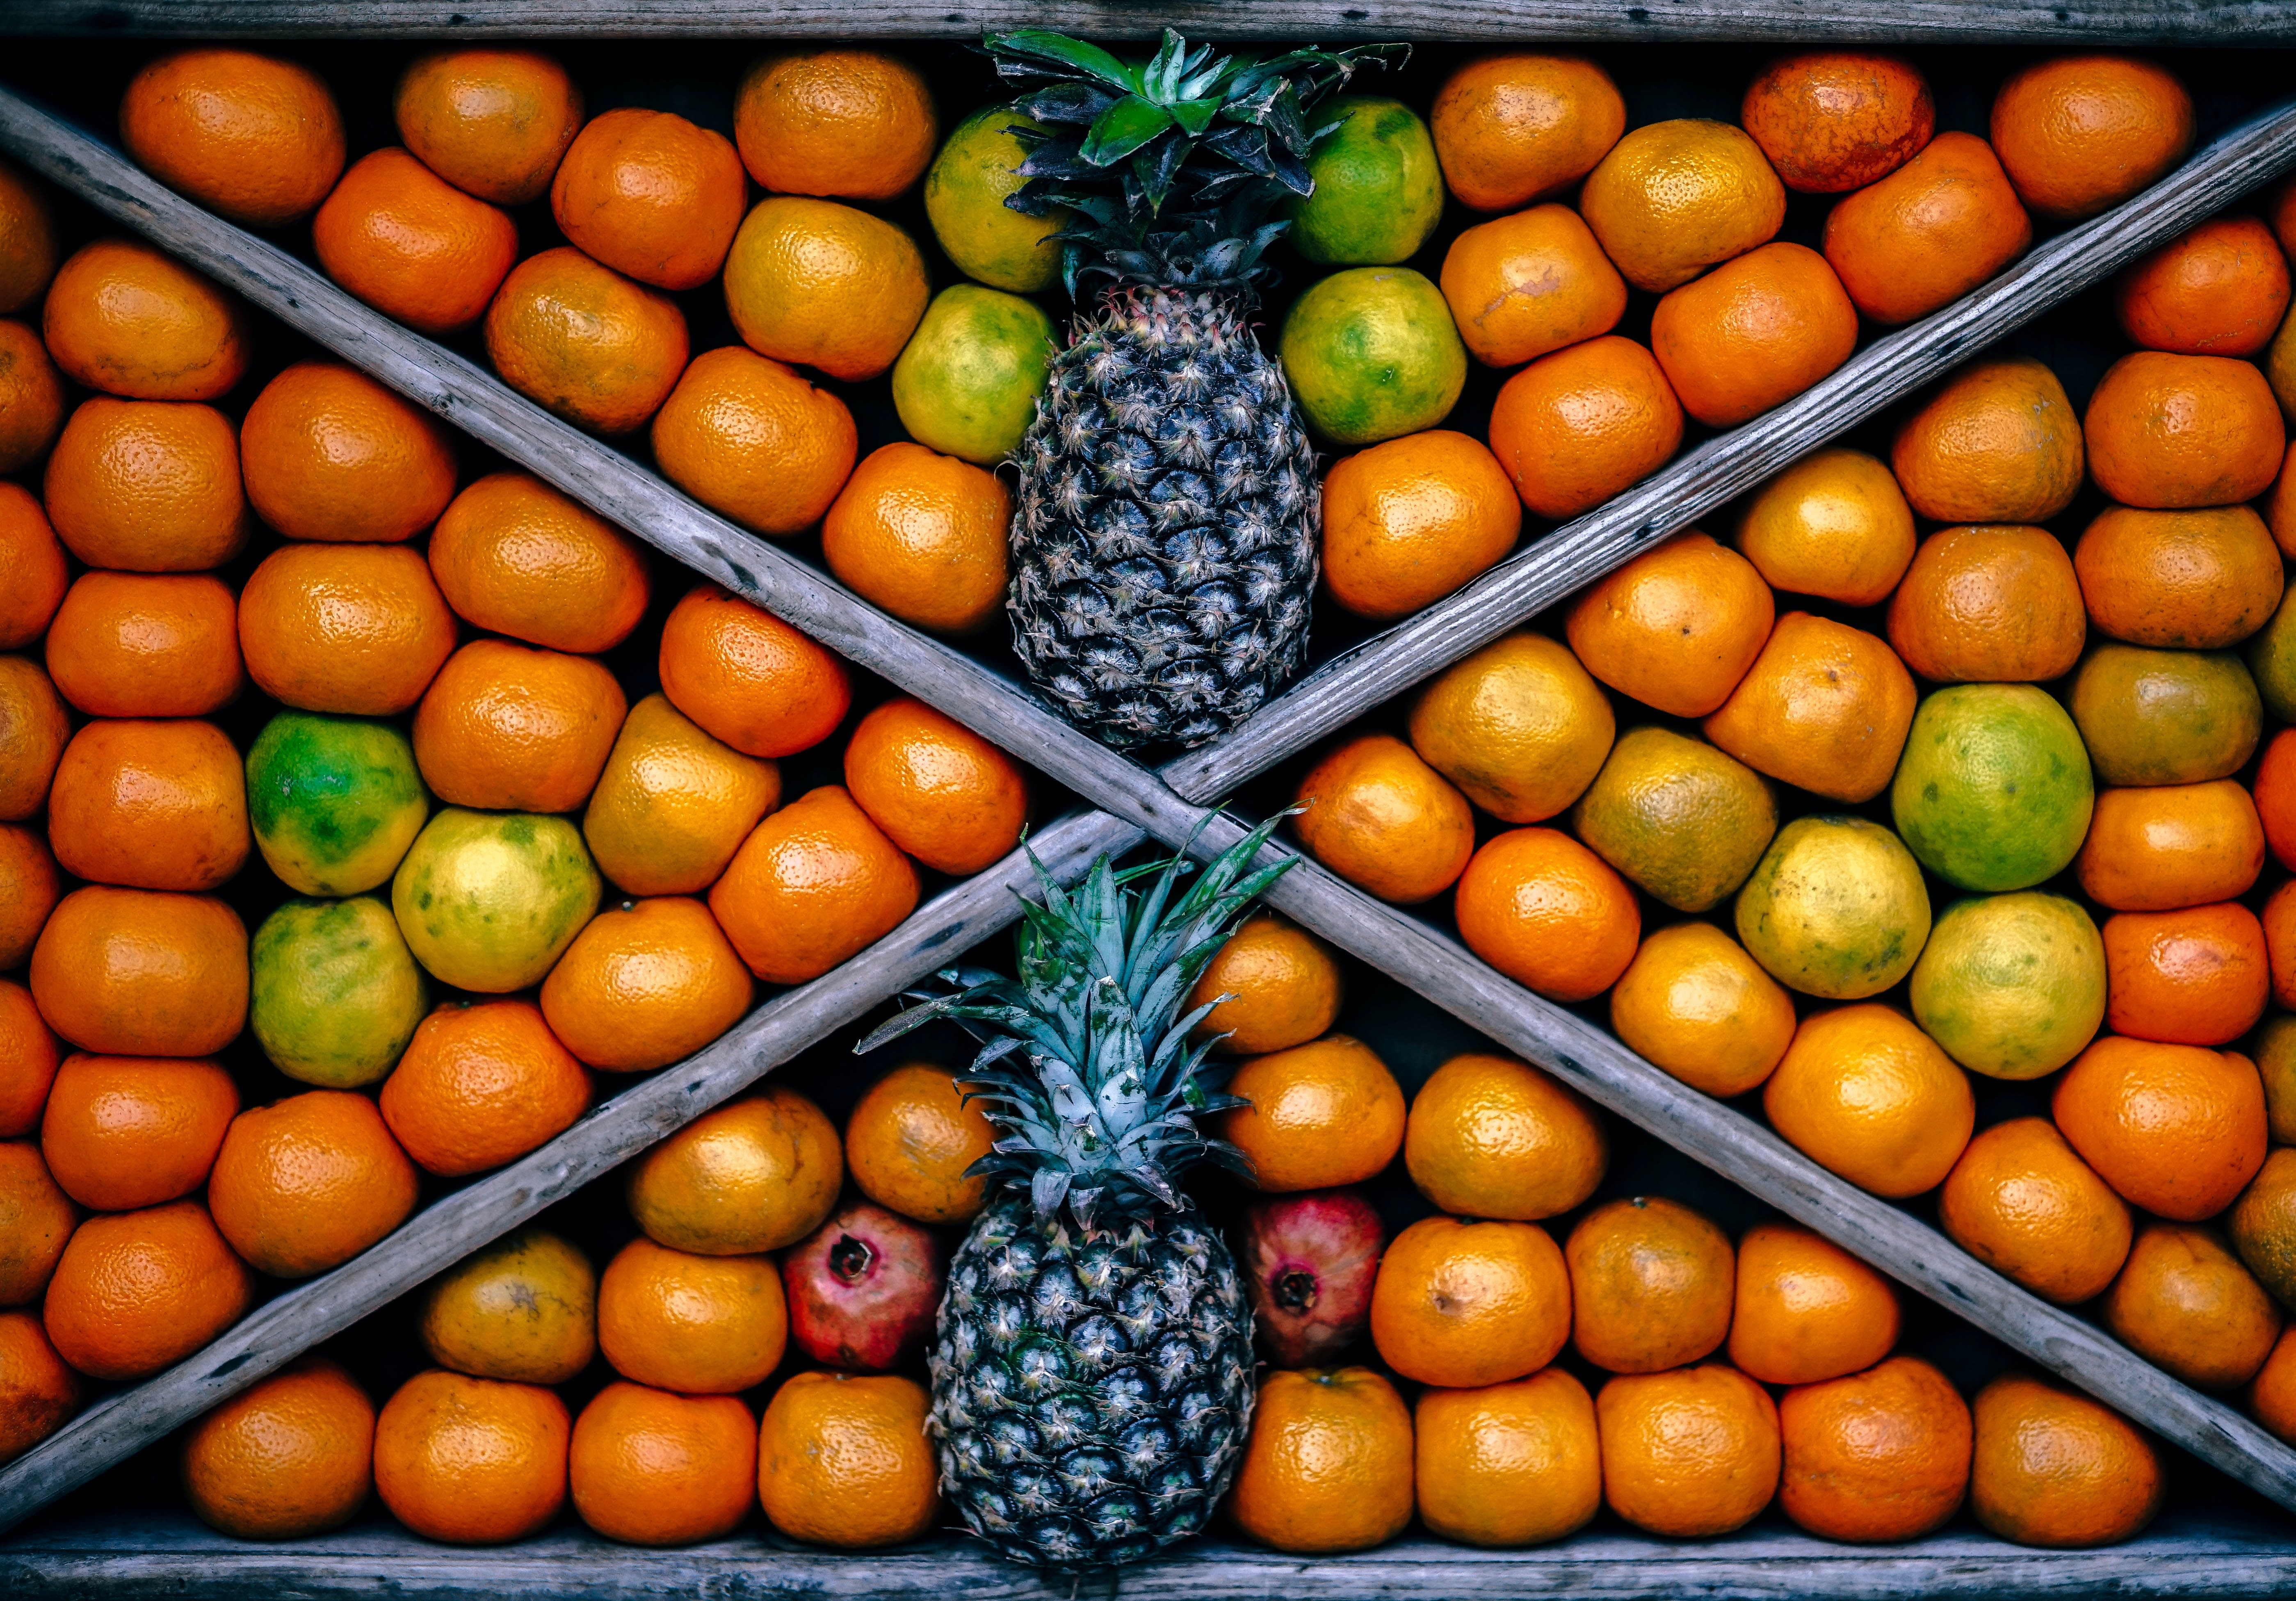 Top view of a fruit bin featuring pineapples and other fruits.